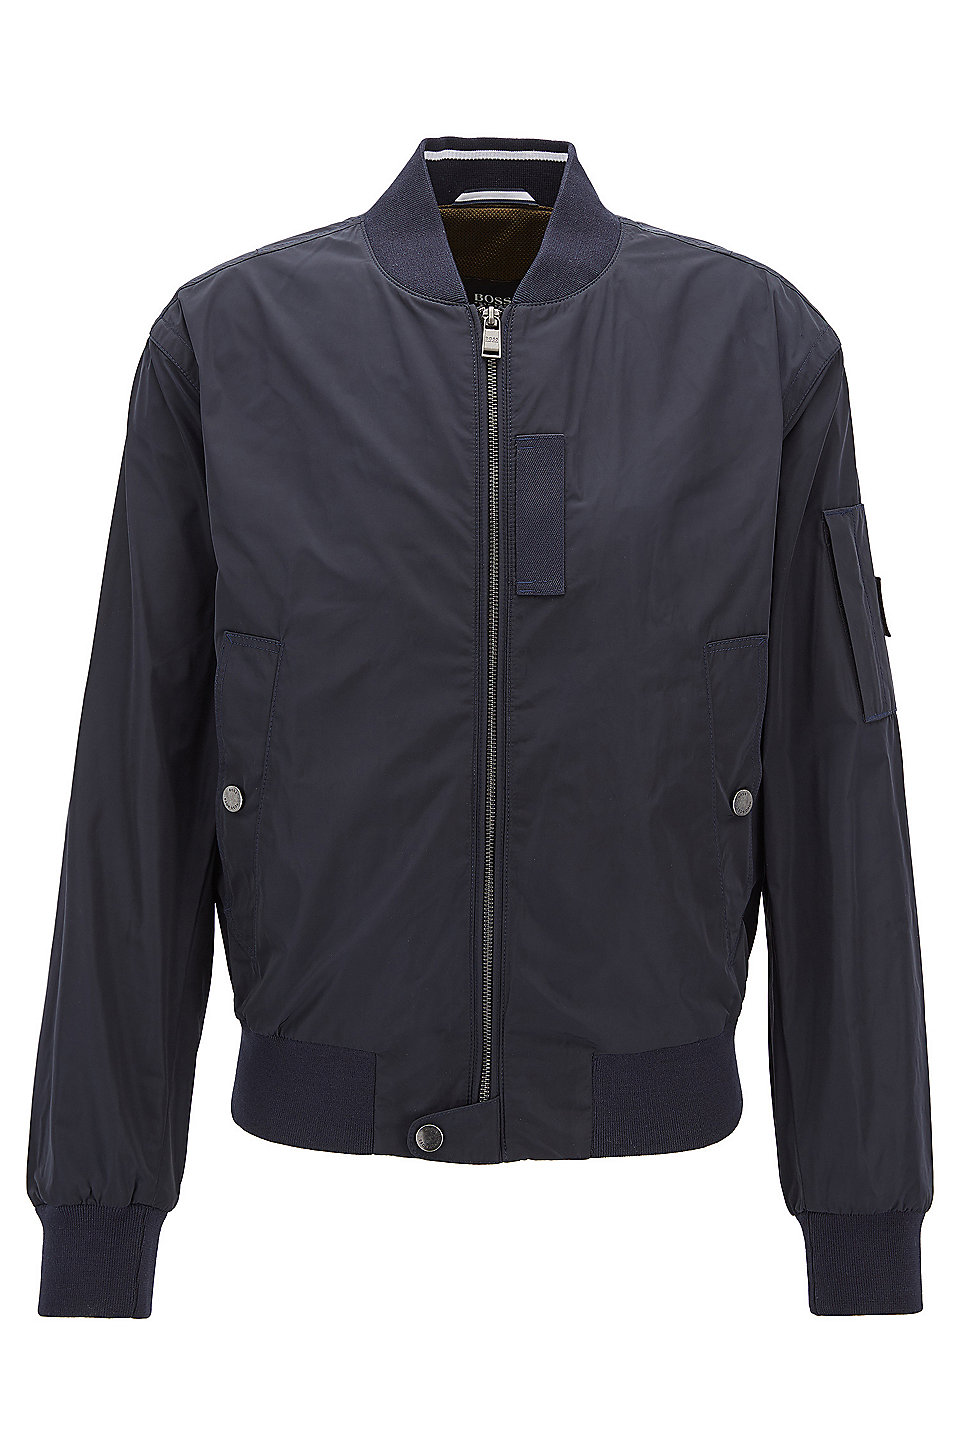 Bomber jacket in smooth technical fabric, Dark Blue. Bomber jacket in  smooth technical fabric by BOSS